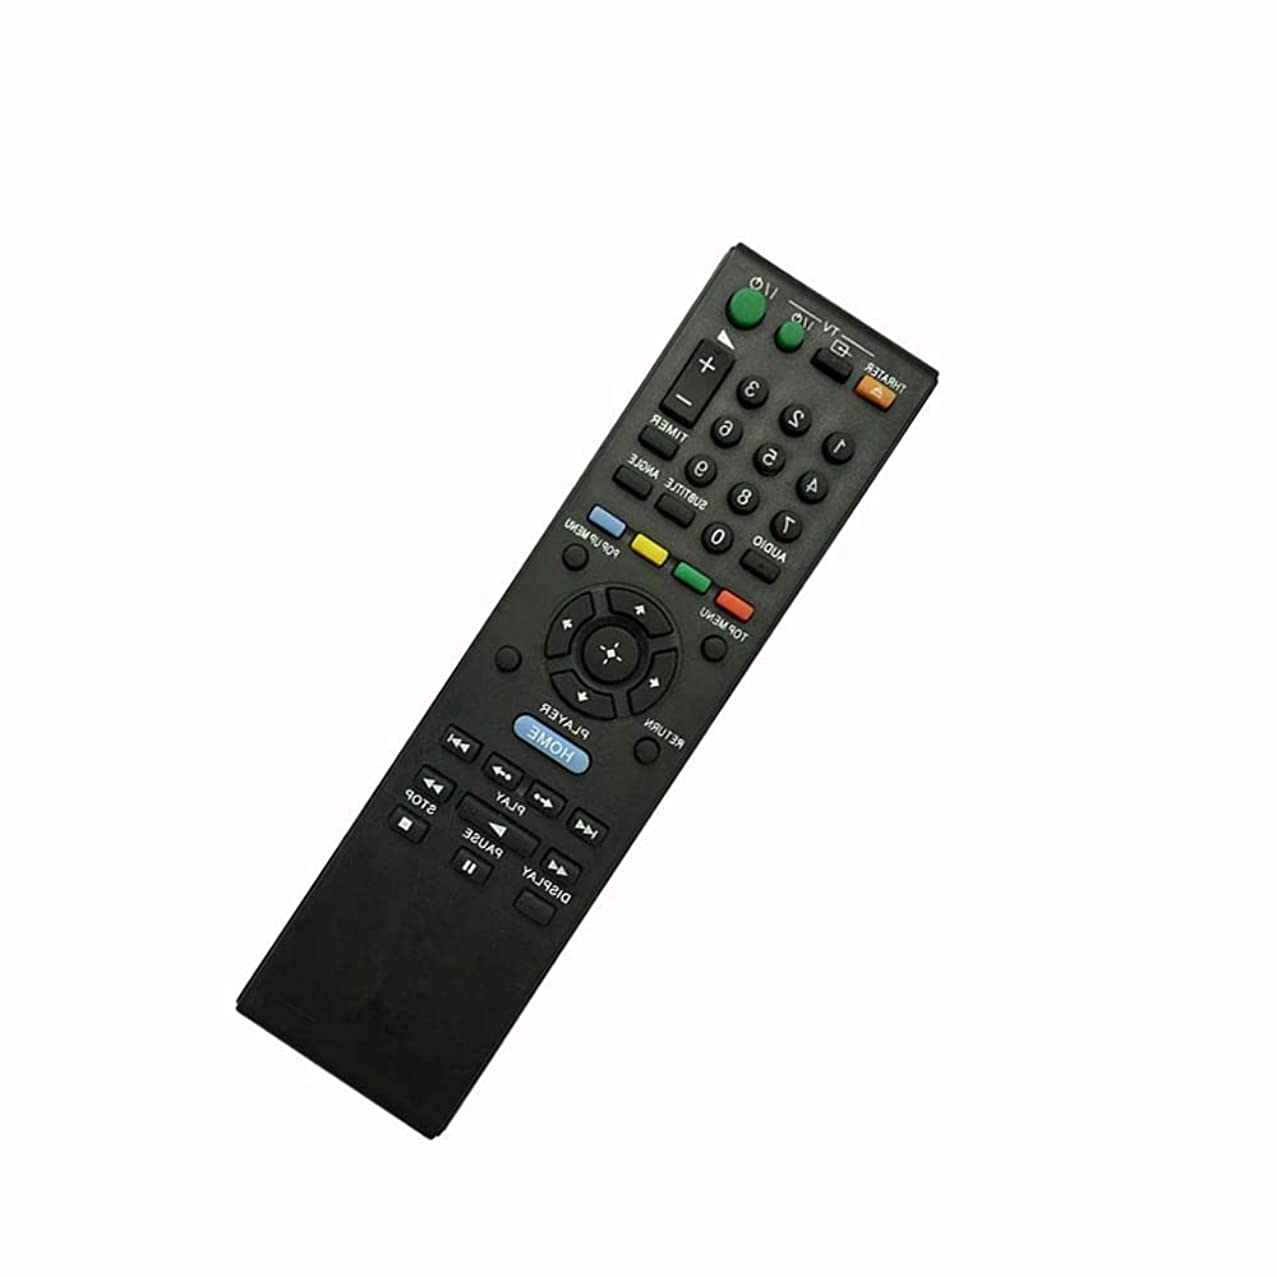 New Replacement Remote Control Fit For Sony BDP-S380 RMTB118A 148995911 BDP-S480 RMTB117A 148940821 Blu-ray BD DVD Player 3D Network